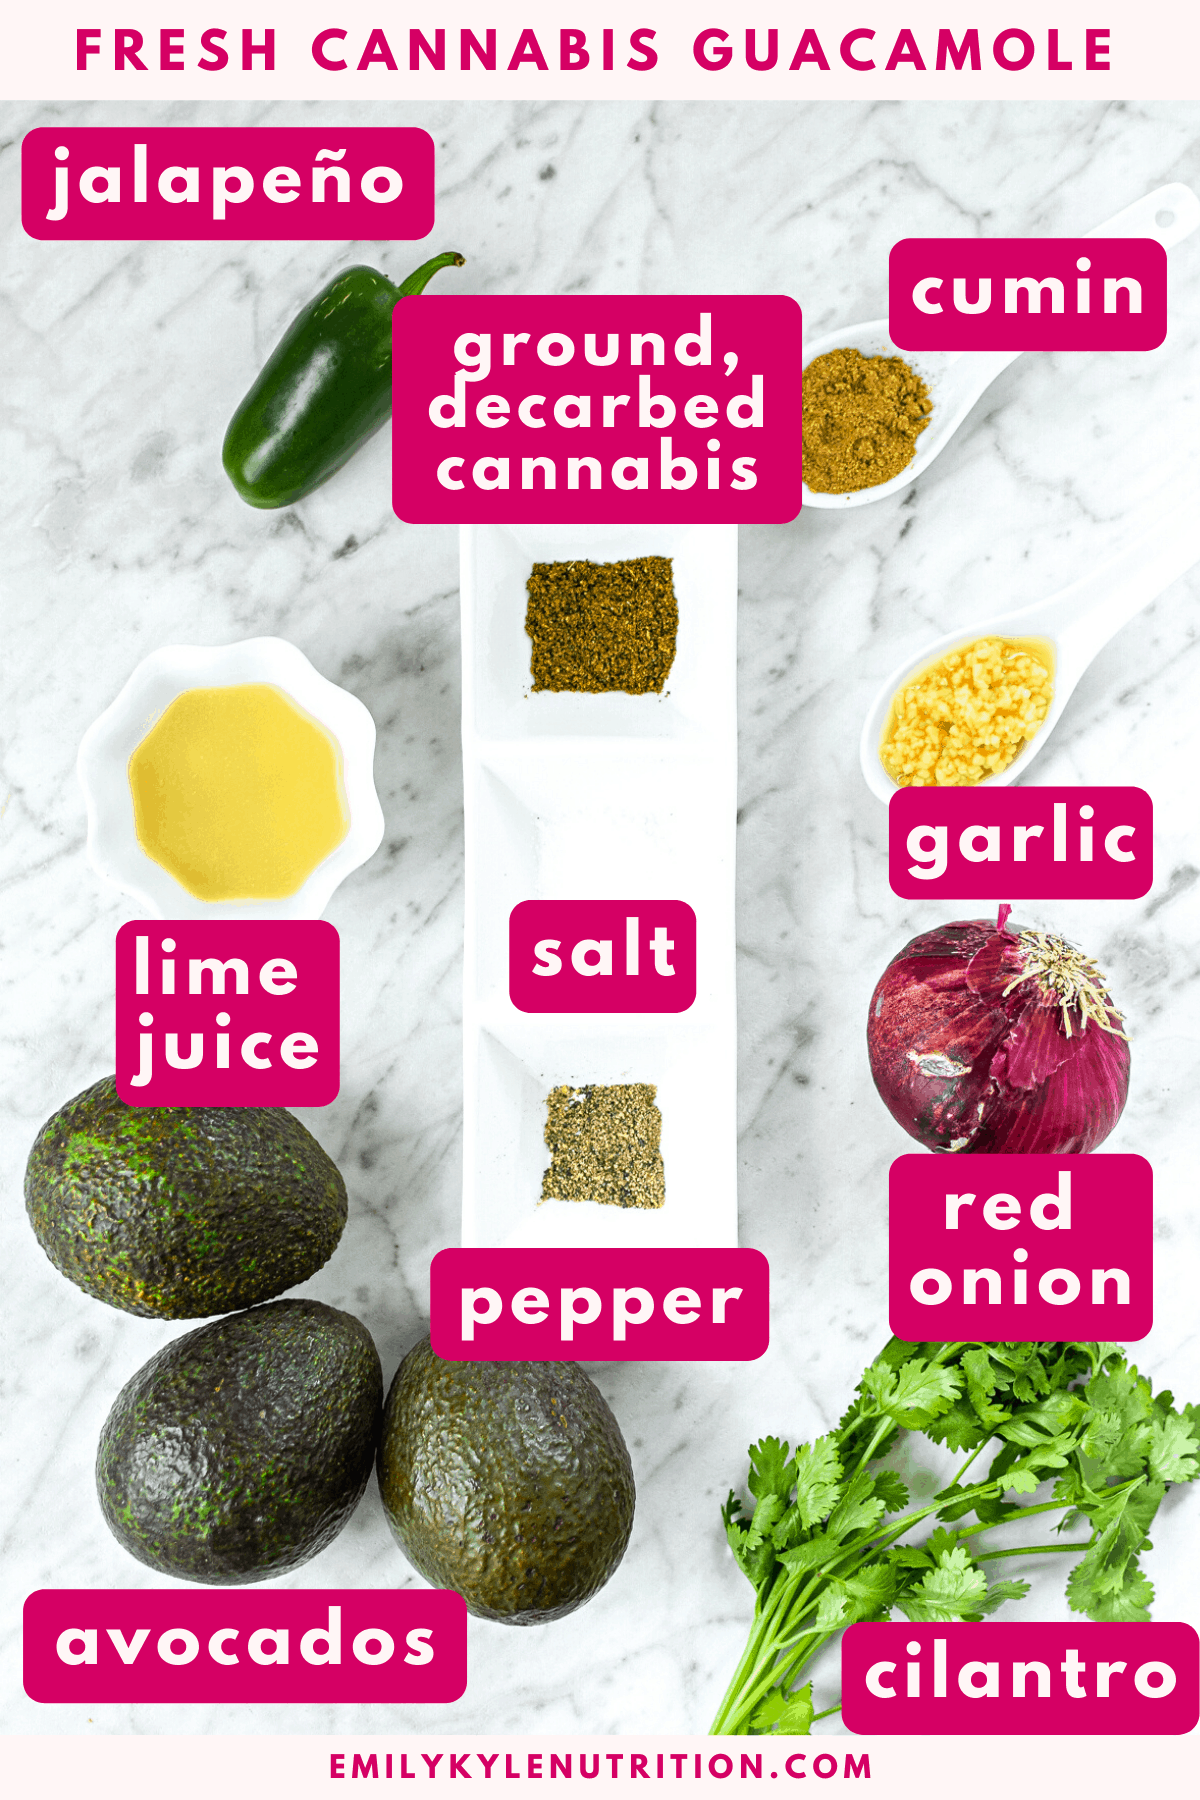 A picture of ingredients listed in pink needed to make guacamole including avocado, lime juice, jalapeño